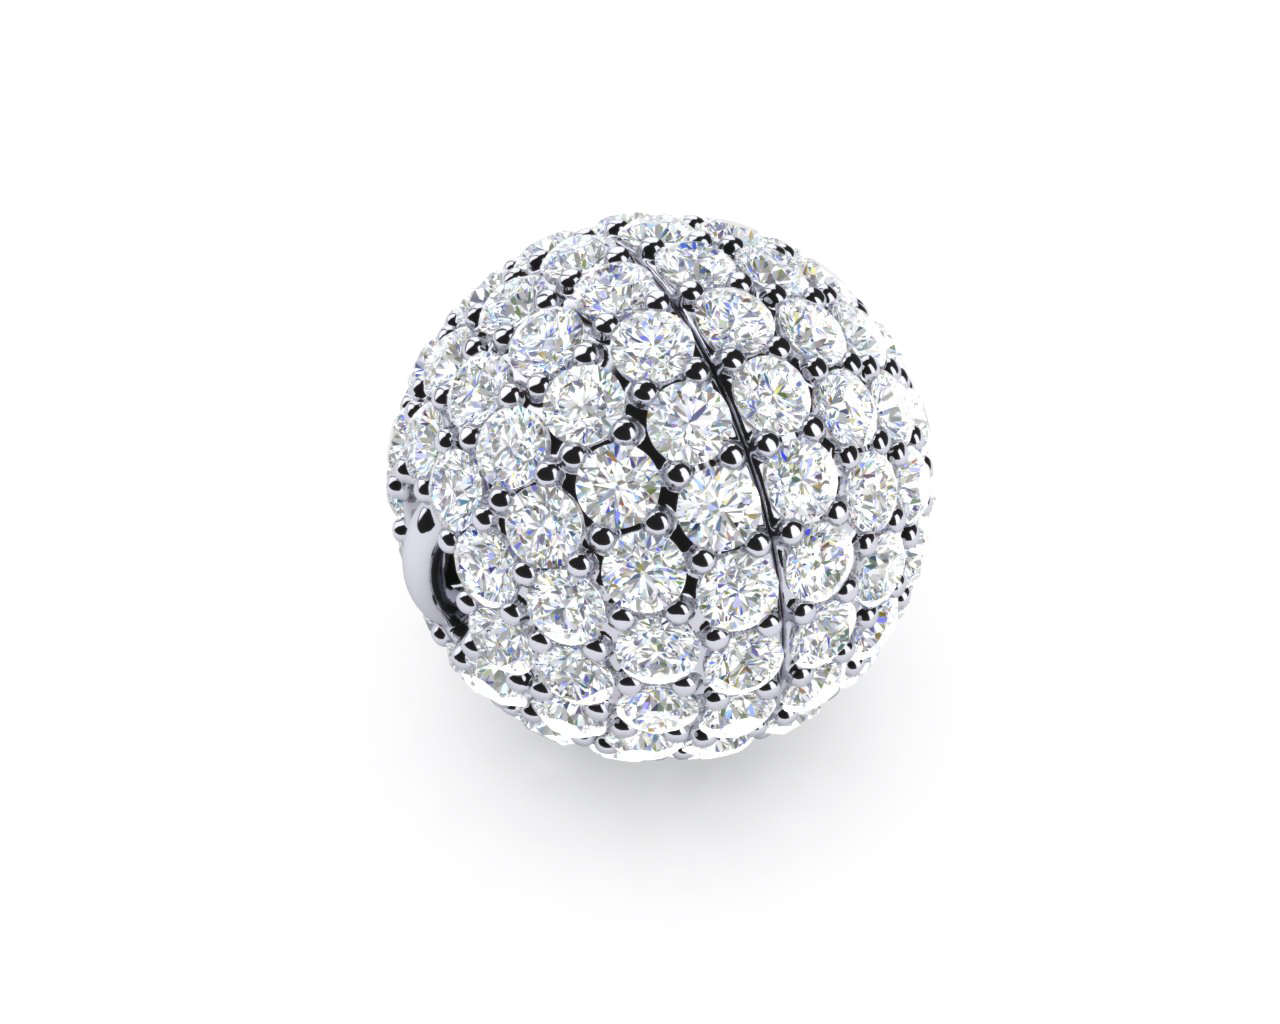 image finnies satinised uncategorised diamond pendant ball the rose centre white and jewellers double